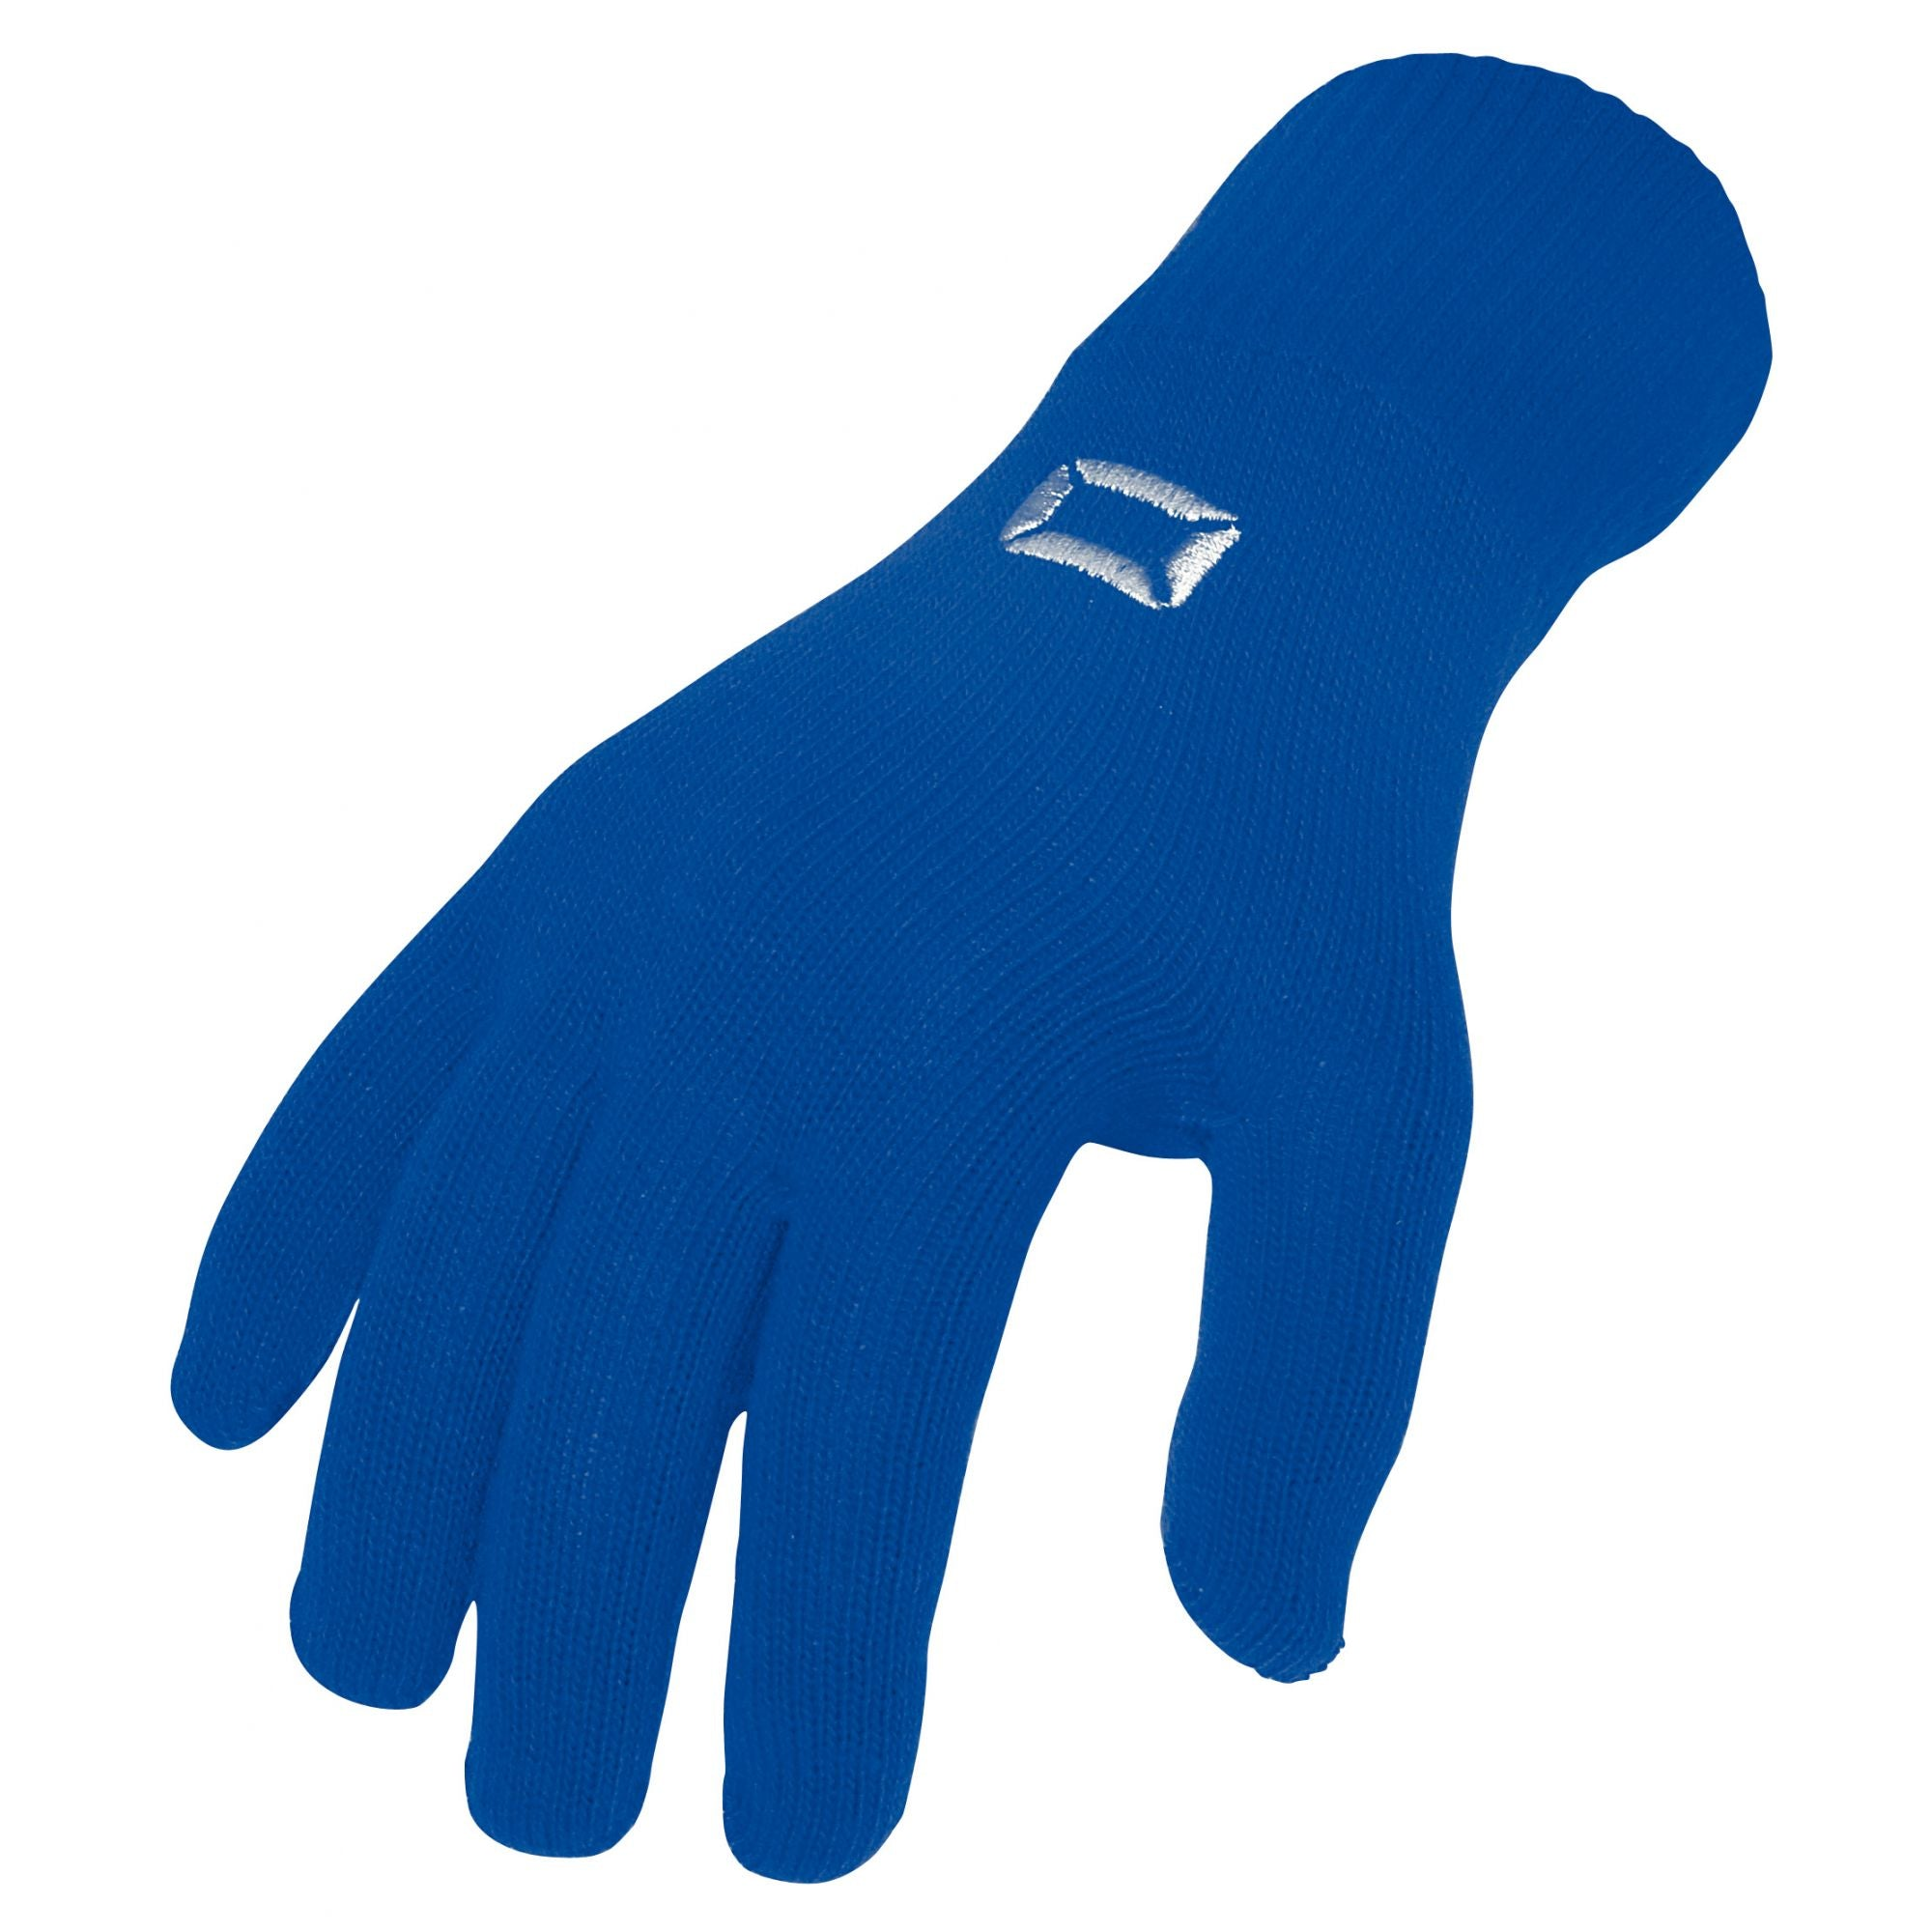 Stanno Stadium player glove in blue with embroidered silver logo on back of hand